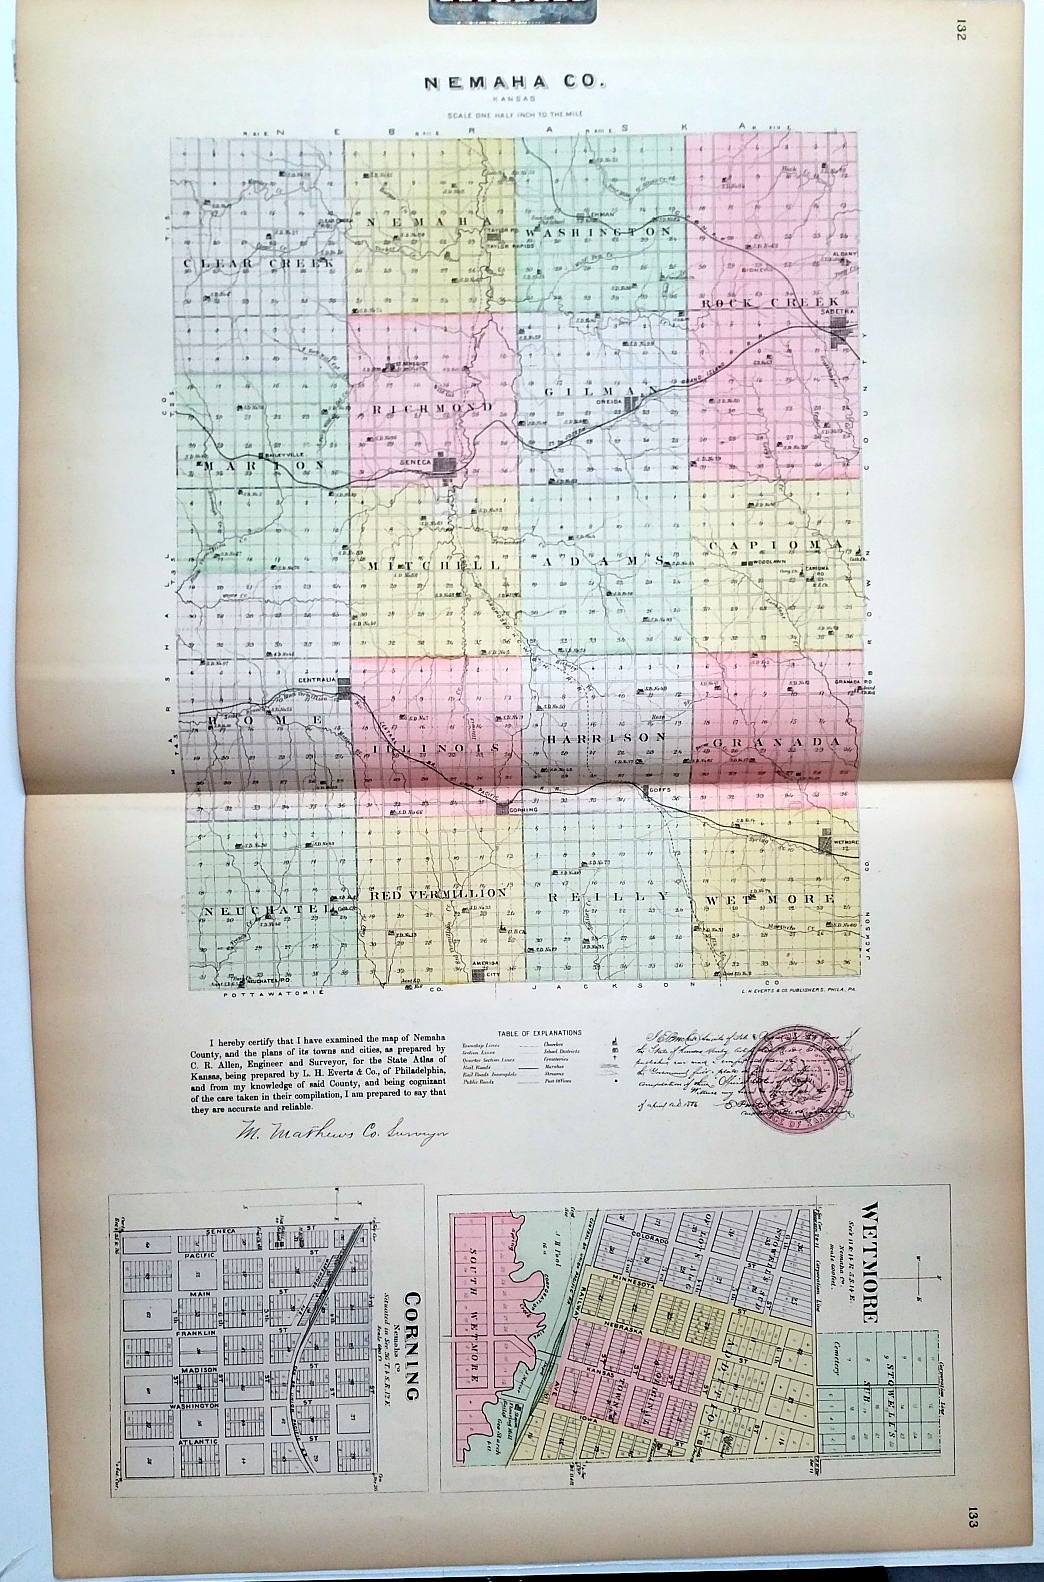 Image for [Map] Nemaha County, Kansas, with Wetmore & Corning of Nemaha Co. [backed with]  Seneca, Oneida, Goffs, & Baileyville of Nemaha Co., And Reece, Fall River, Hamilton Neal, & Climax of Greenwood Co.